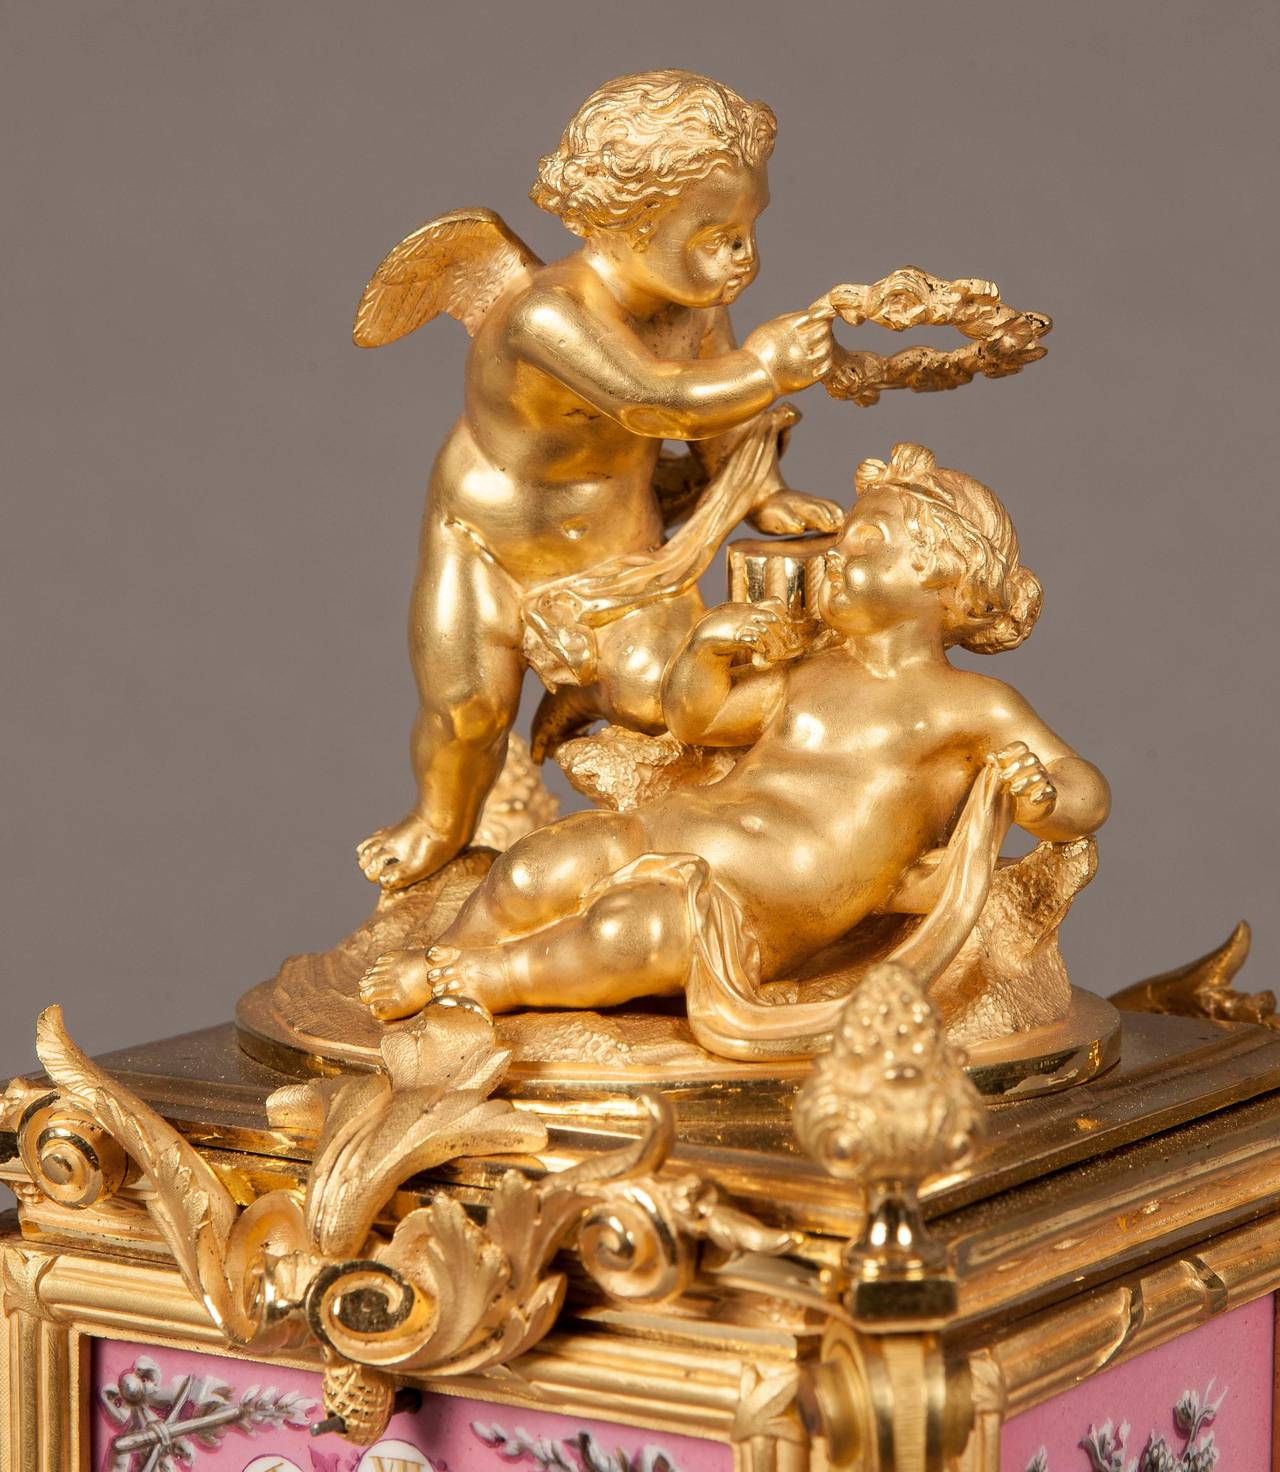 A carriage clock in the Louis XV manner  The ornate and shaped gilt bronze case having putti at the angles, surmounted by two winged putti, one proffering a laurel wreath; dressed with hand painted dusky rose 'Sevres' hand painted panels framed